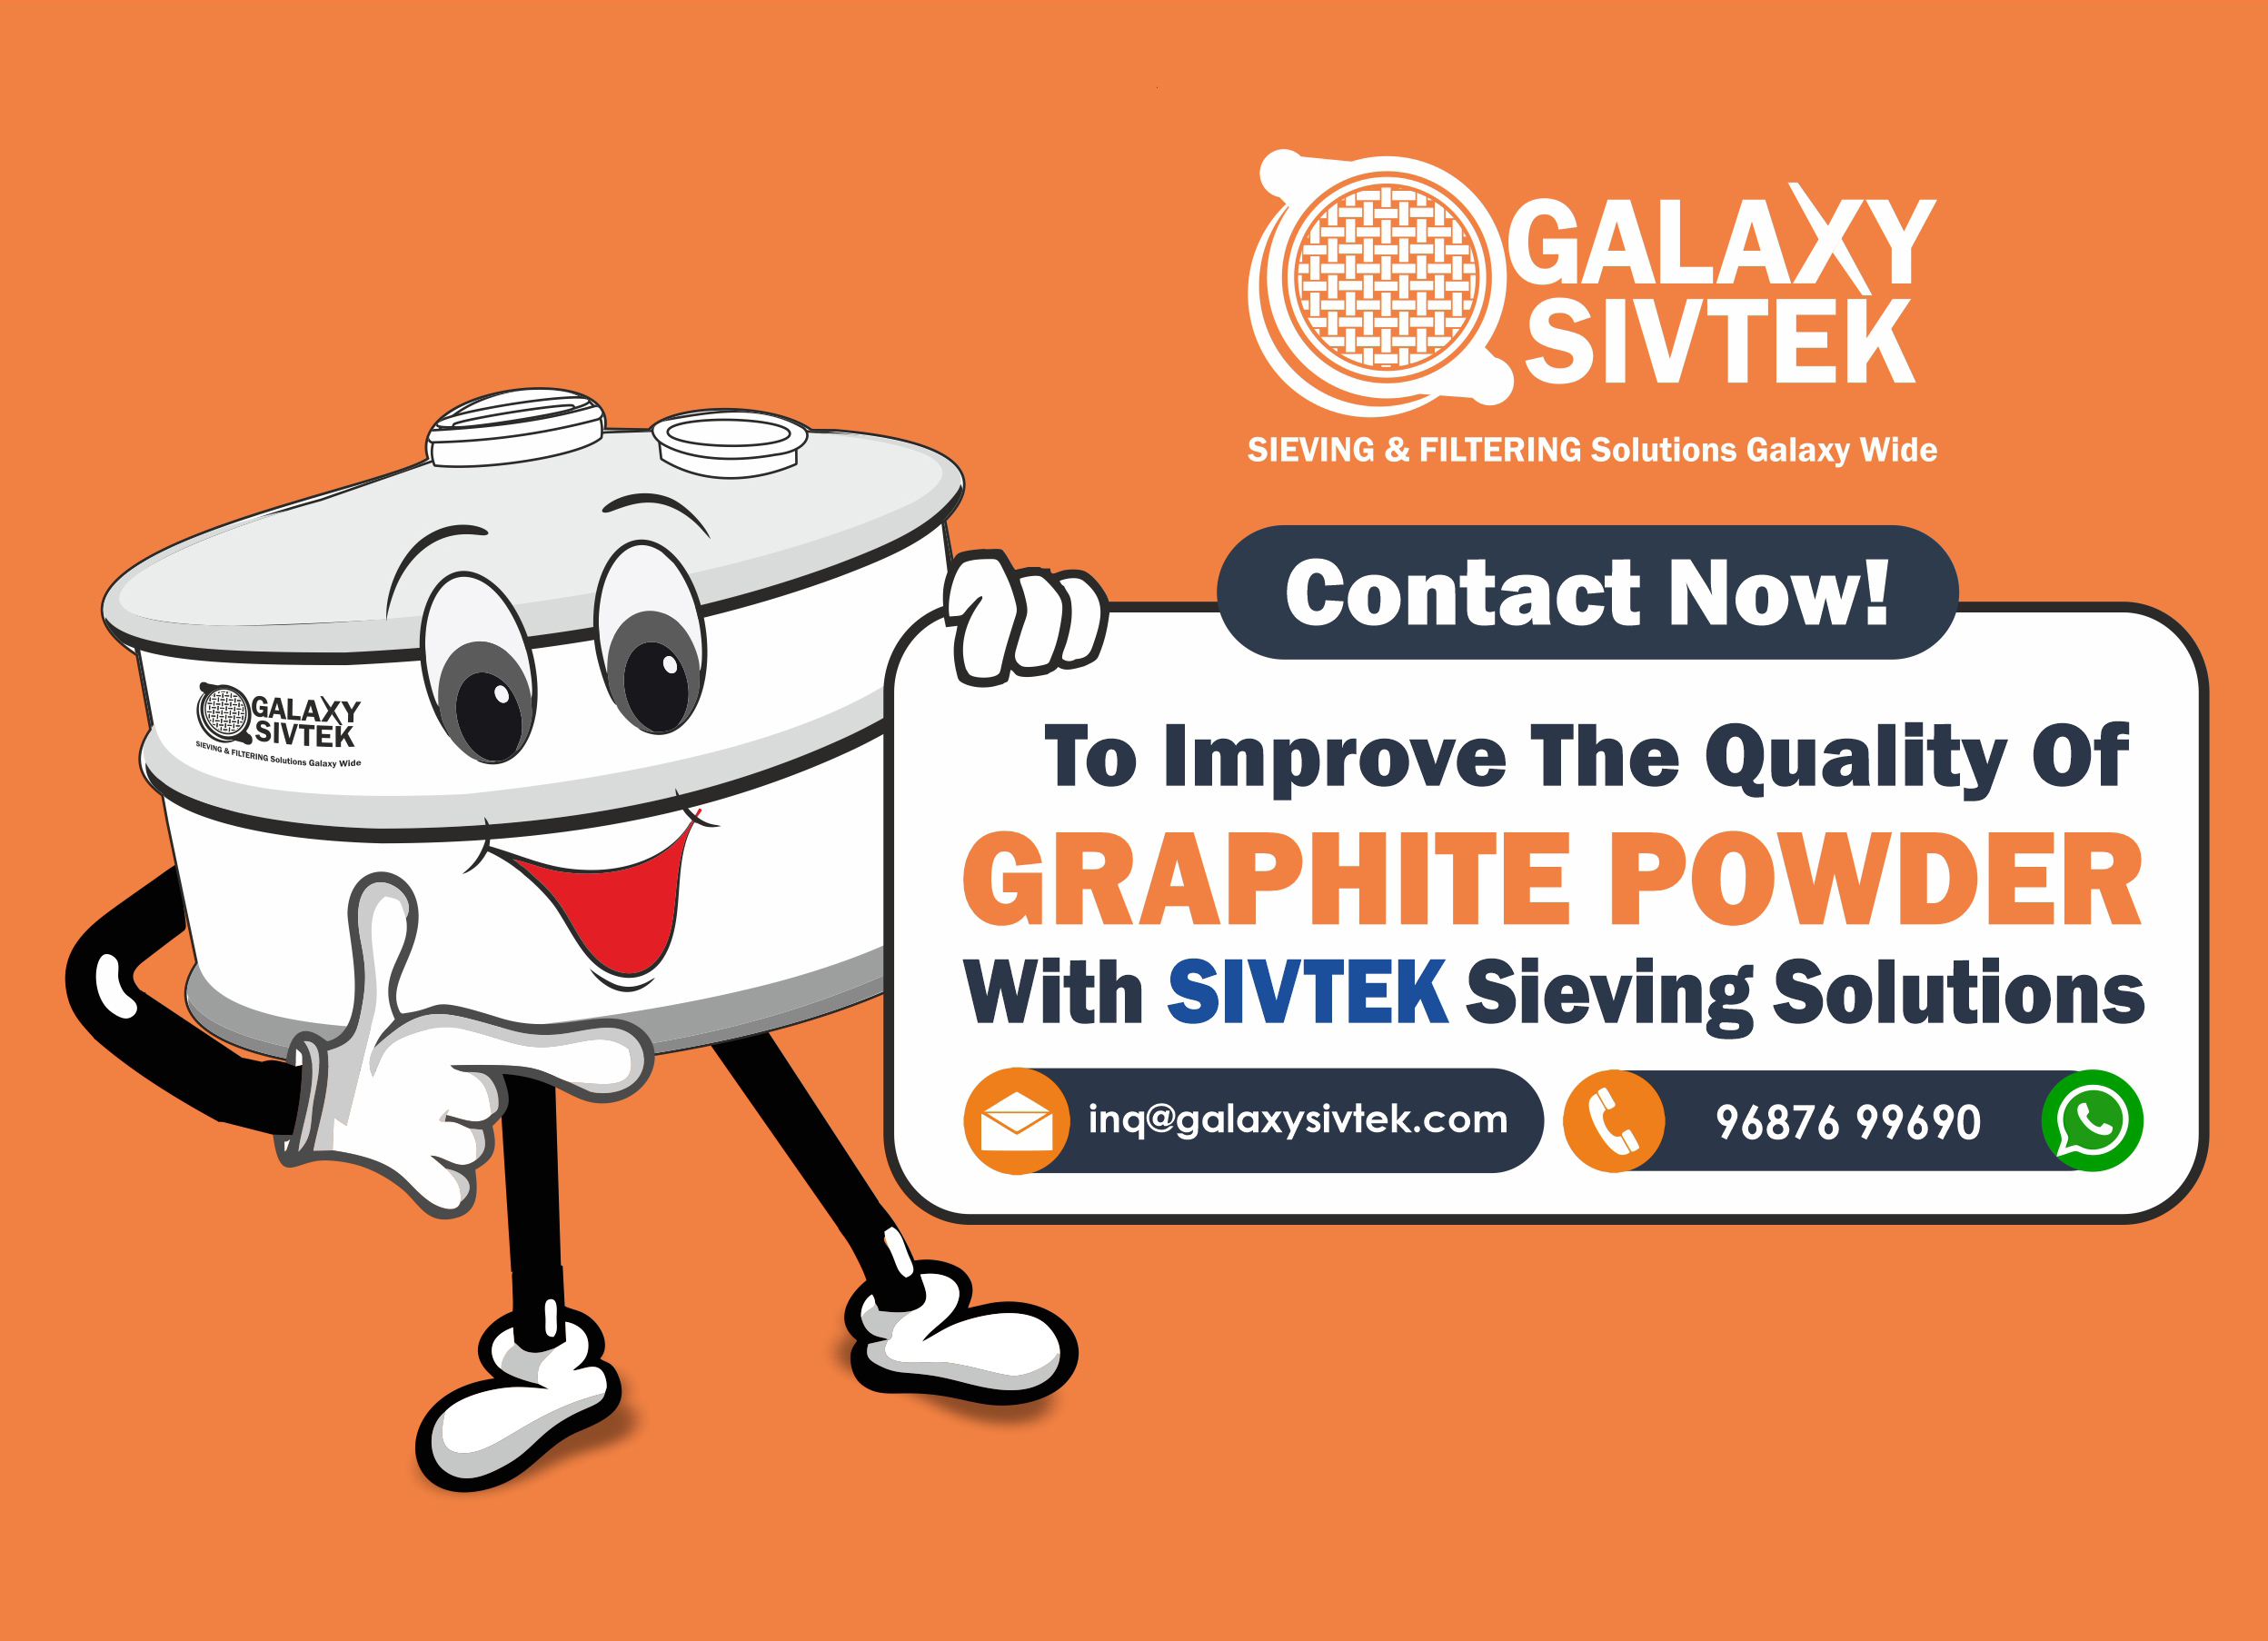 sieving solutions for graphite powder - Contact us now